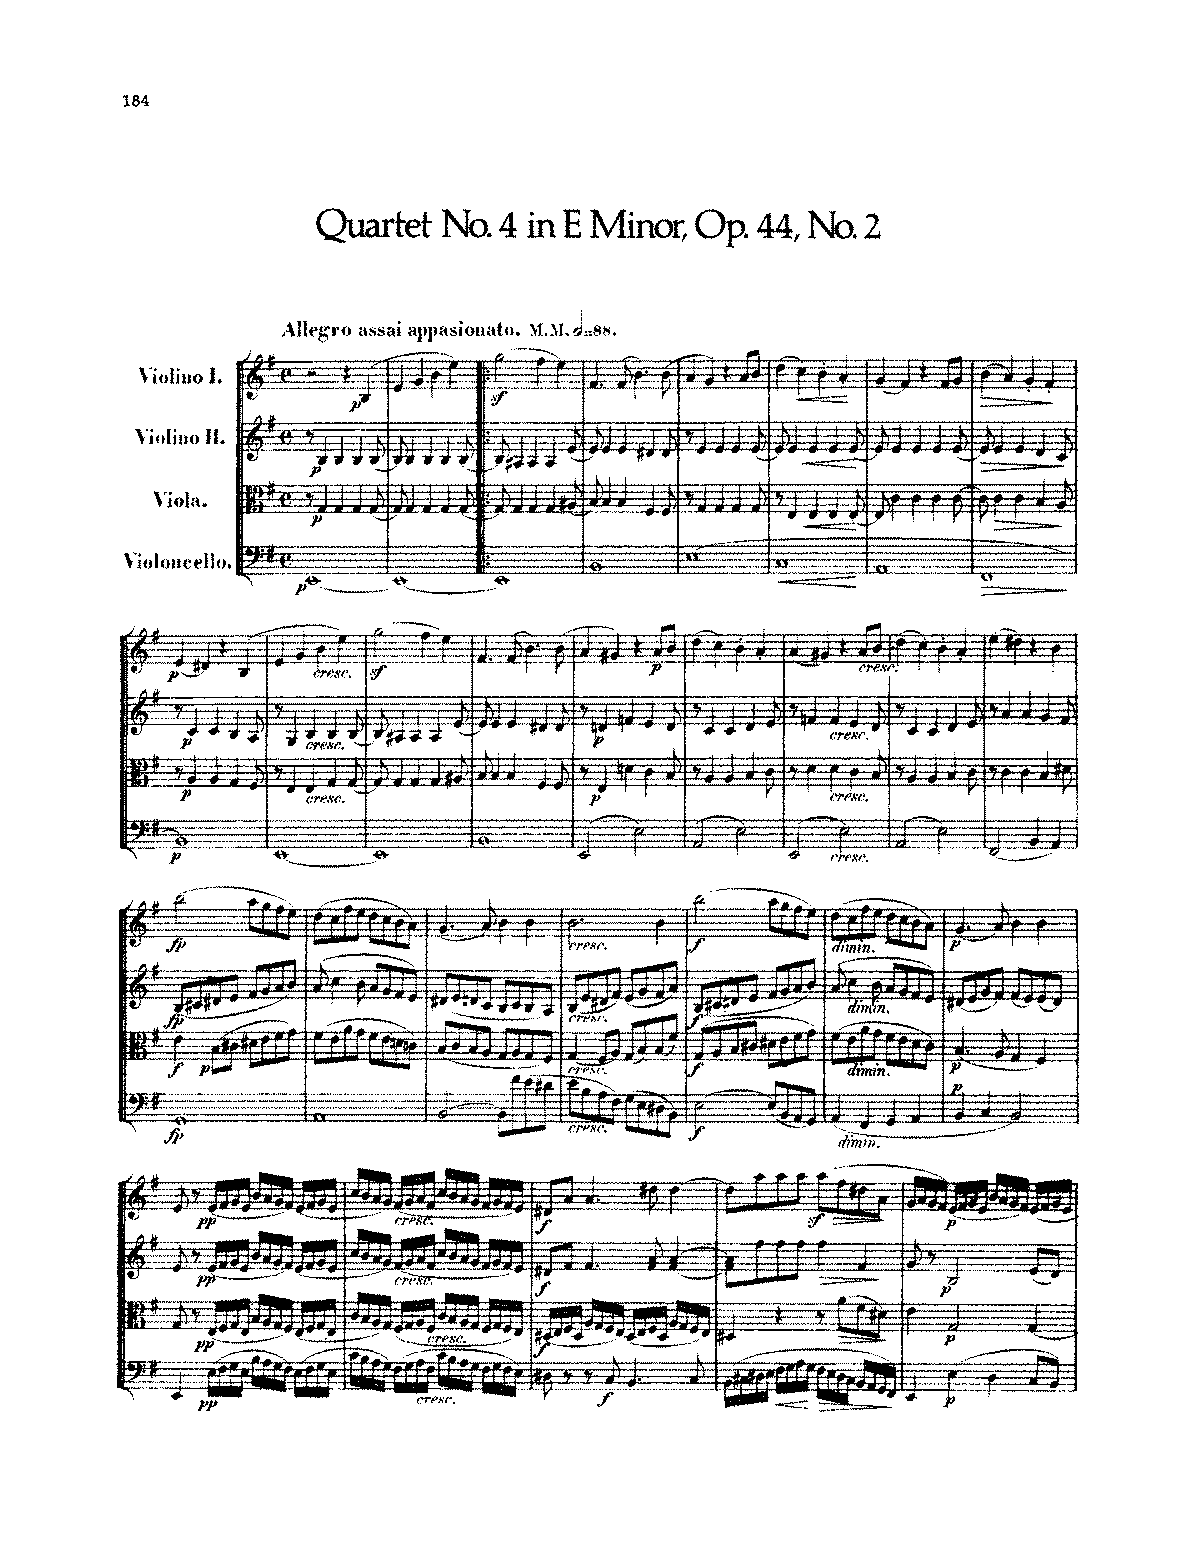 Mendelssohn - String Quartet No. 4.pdf